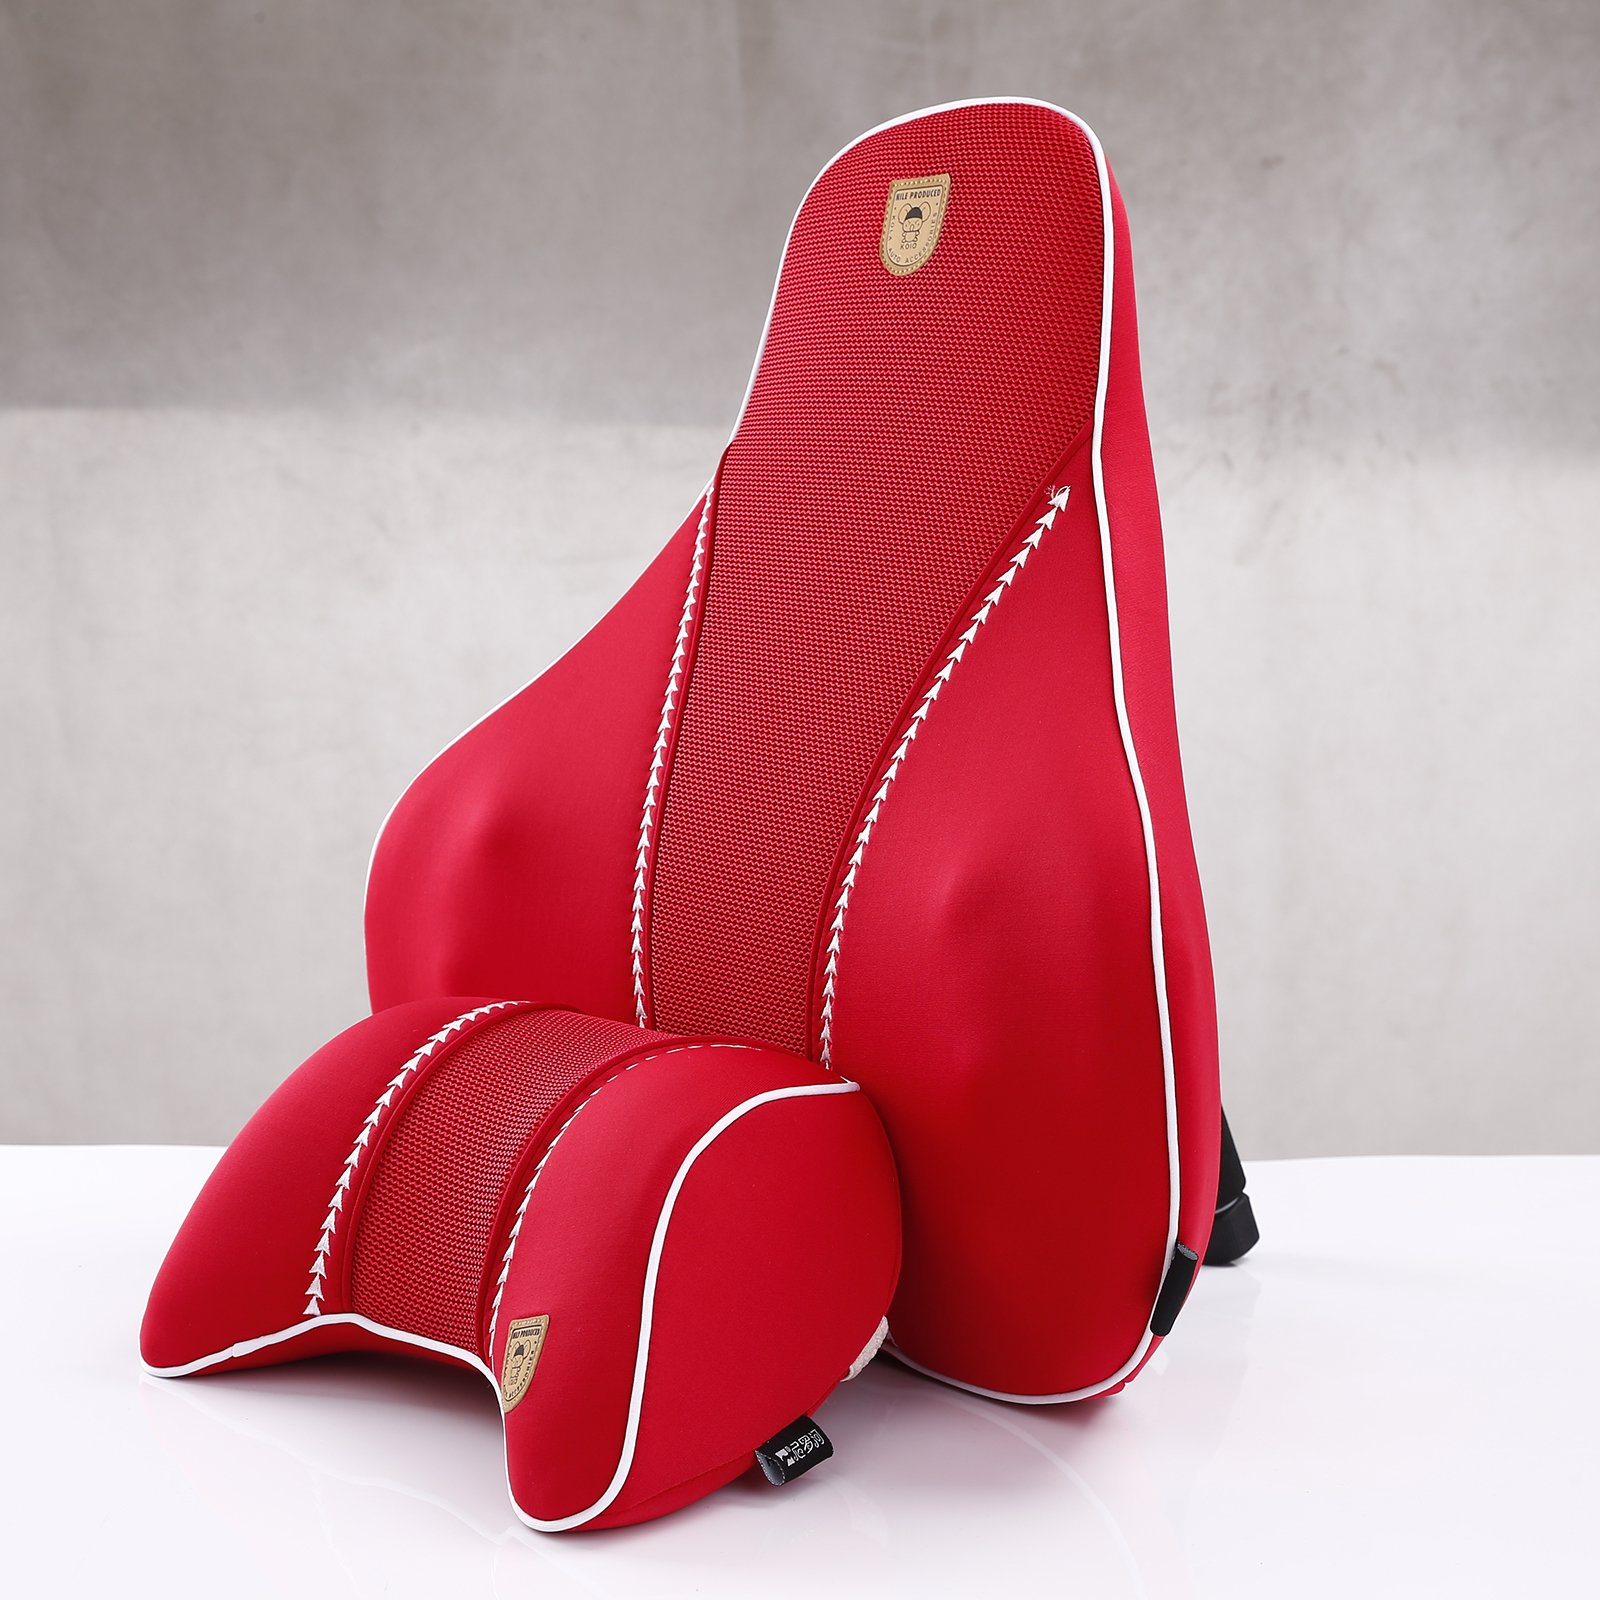 MeiBoAll Auto Car Seat Backrest Memory Foam Car Lumbar Cushion and Car Neck Pillow Use for Travel and Car Chair Red